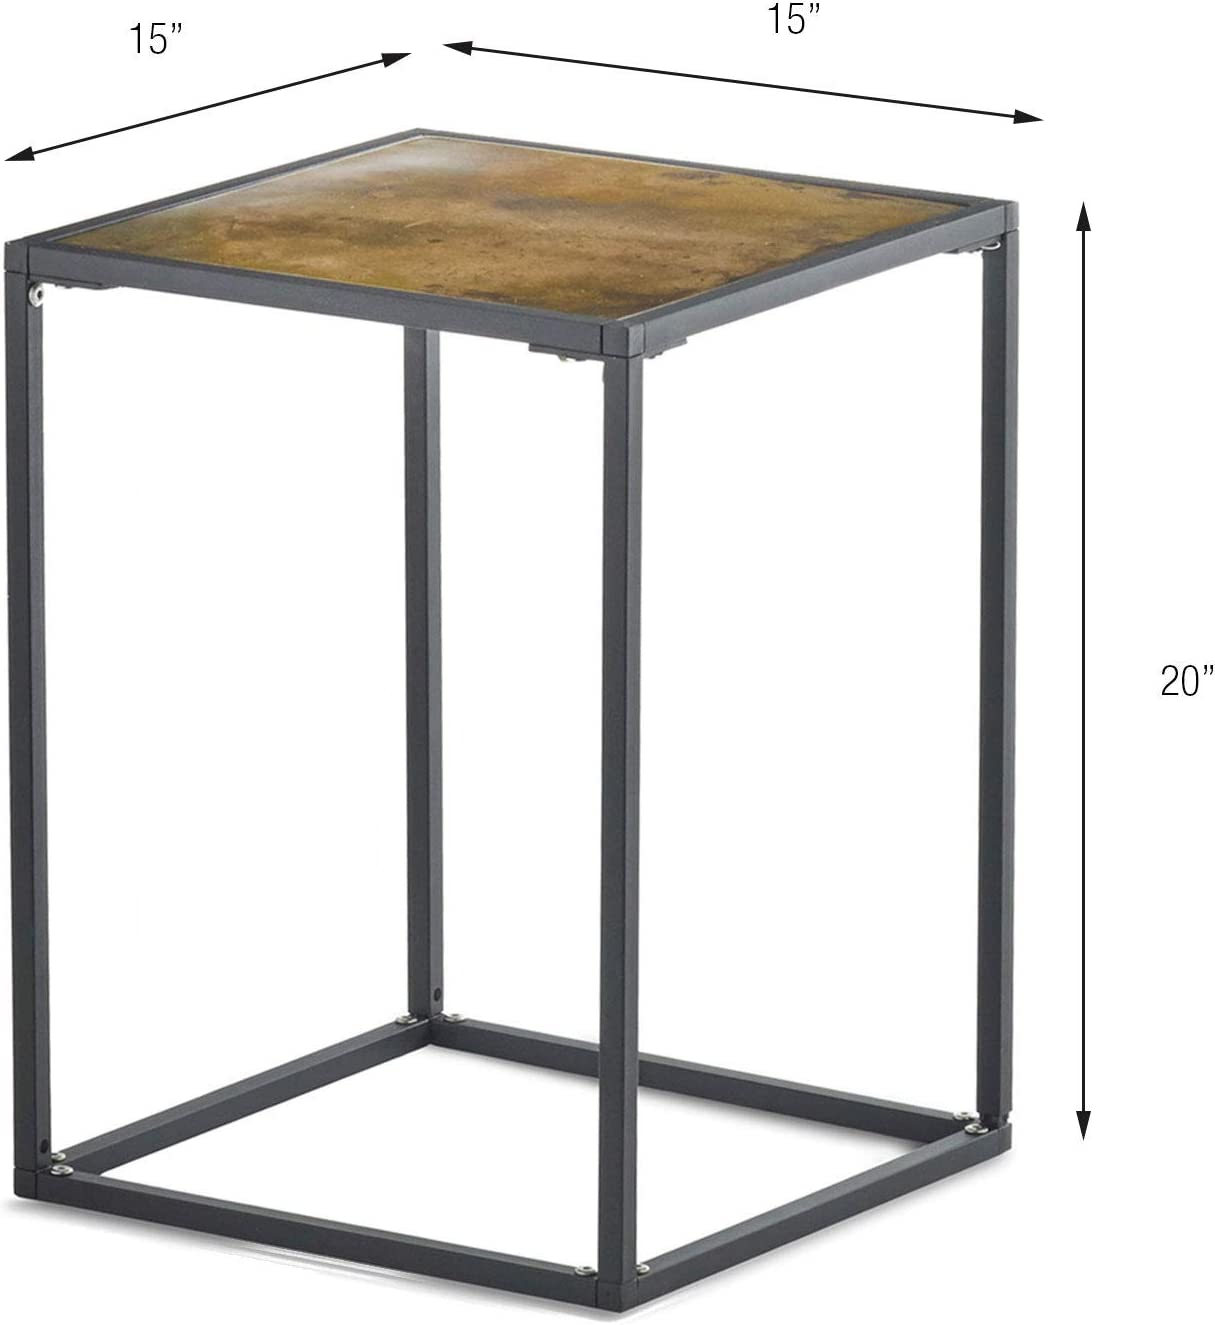 - Amazon.com: Design Ideas Pietra Patina Small Side Table, Metal Modern End/Accent  Table, Black/Brass: Kitchen & Dining